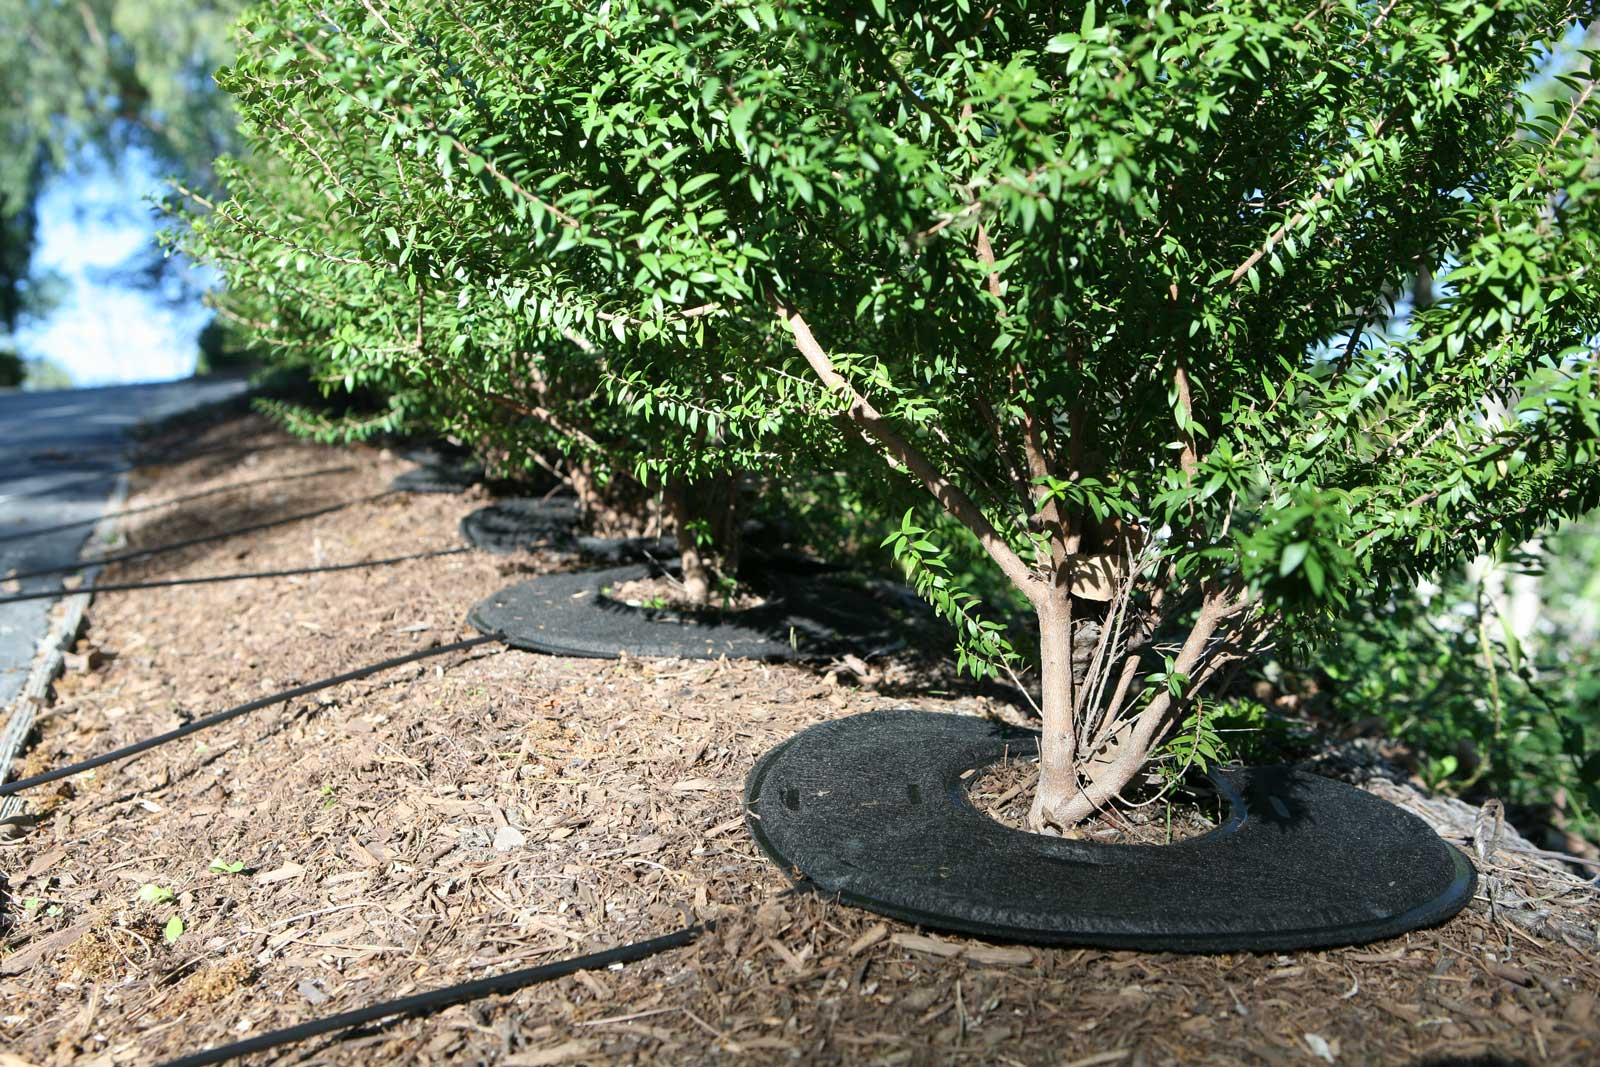 Compared to other irrigation methods, RootWise™ can save up to 80 percent water.